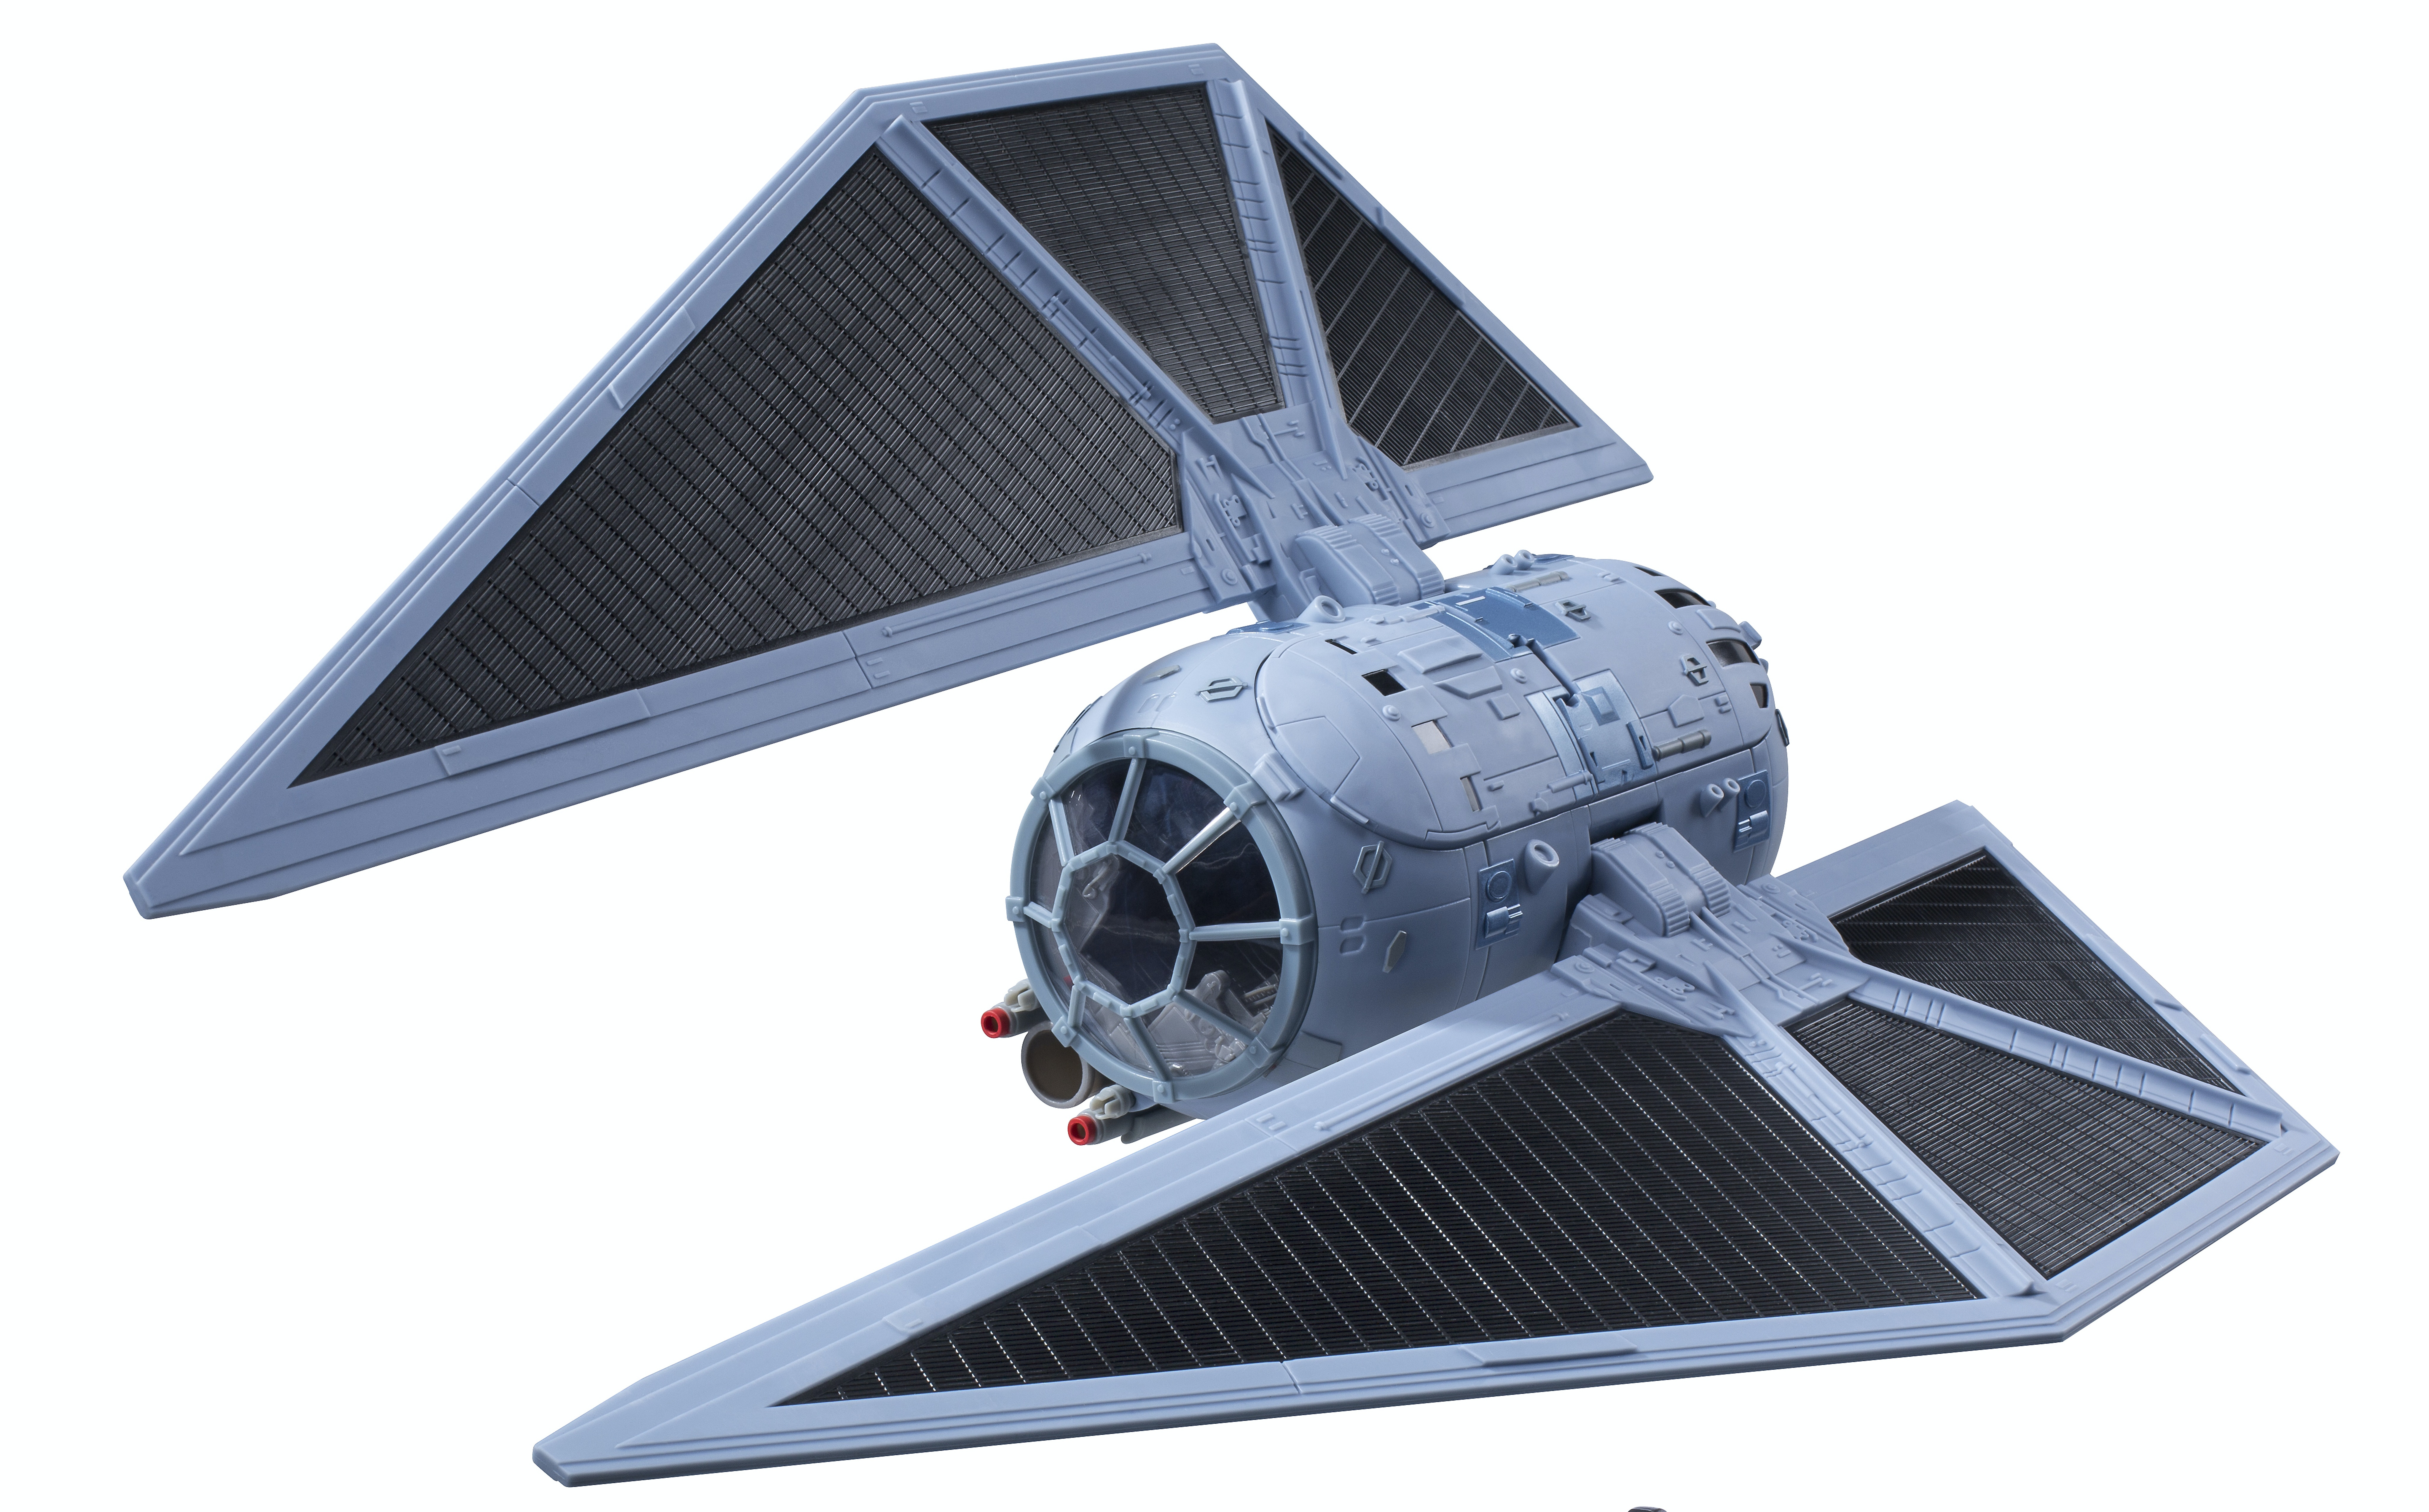 We haven't seen the TIE Striker in any footage yet, so we'll have to settle for the toy version.